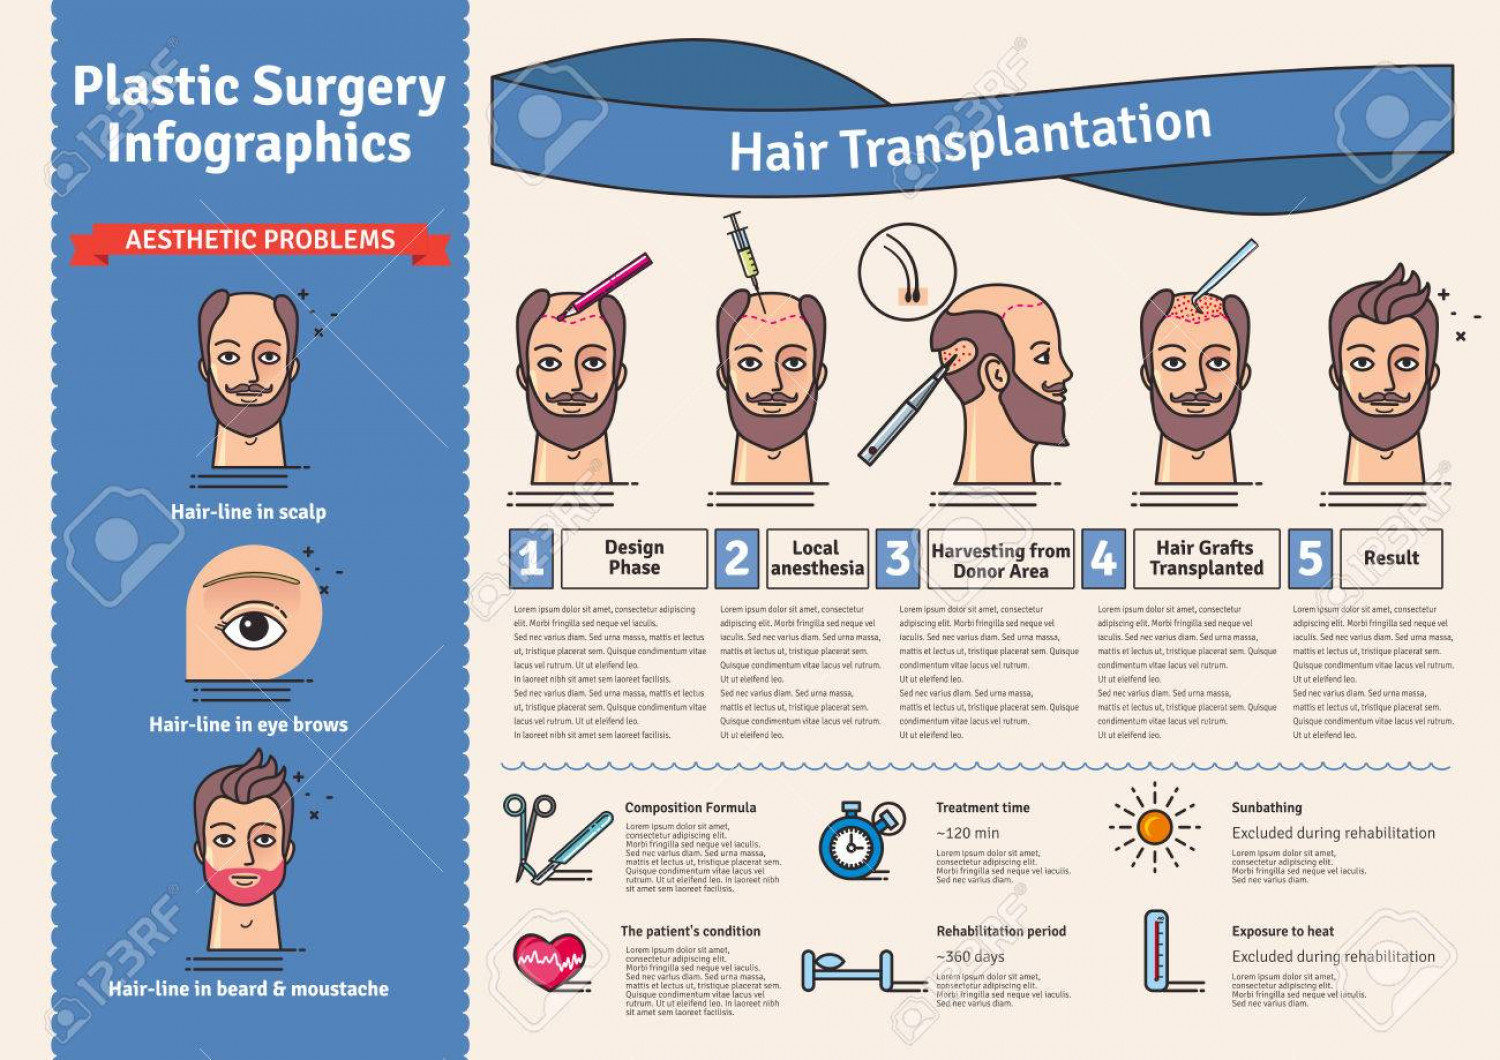 Is Hair Transplant Painful? Infographic